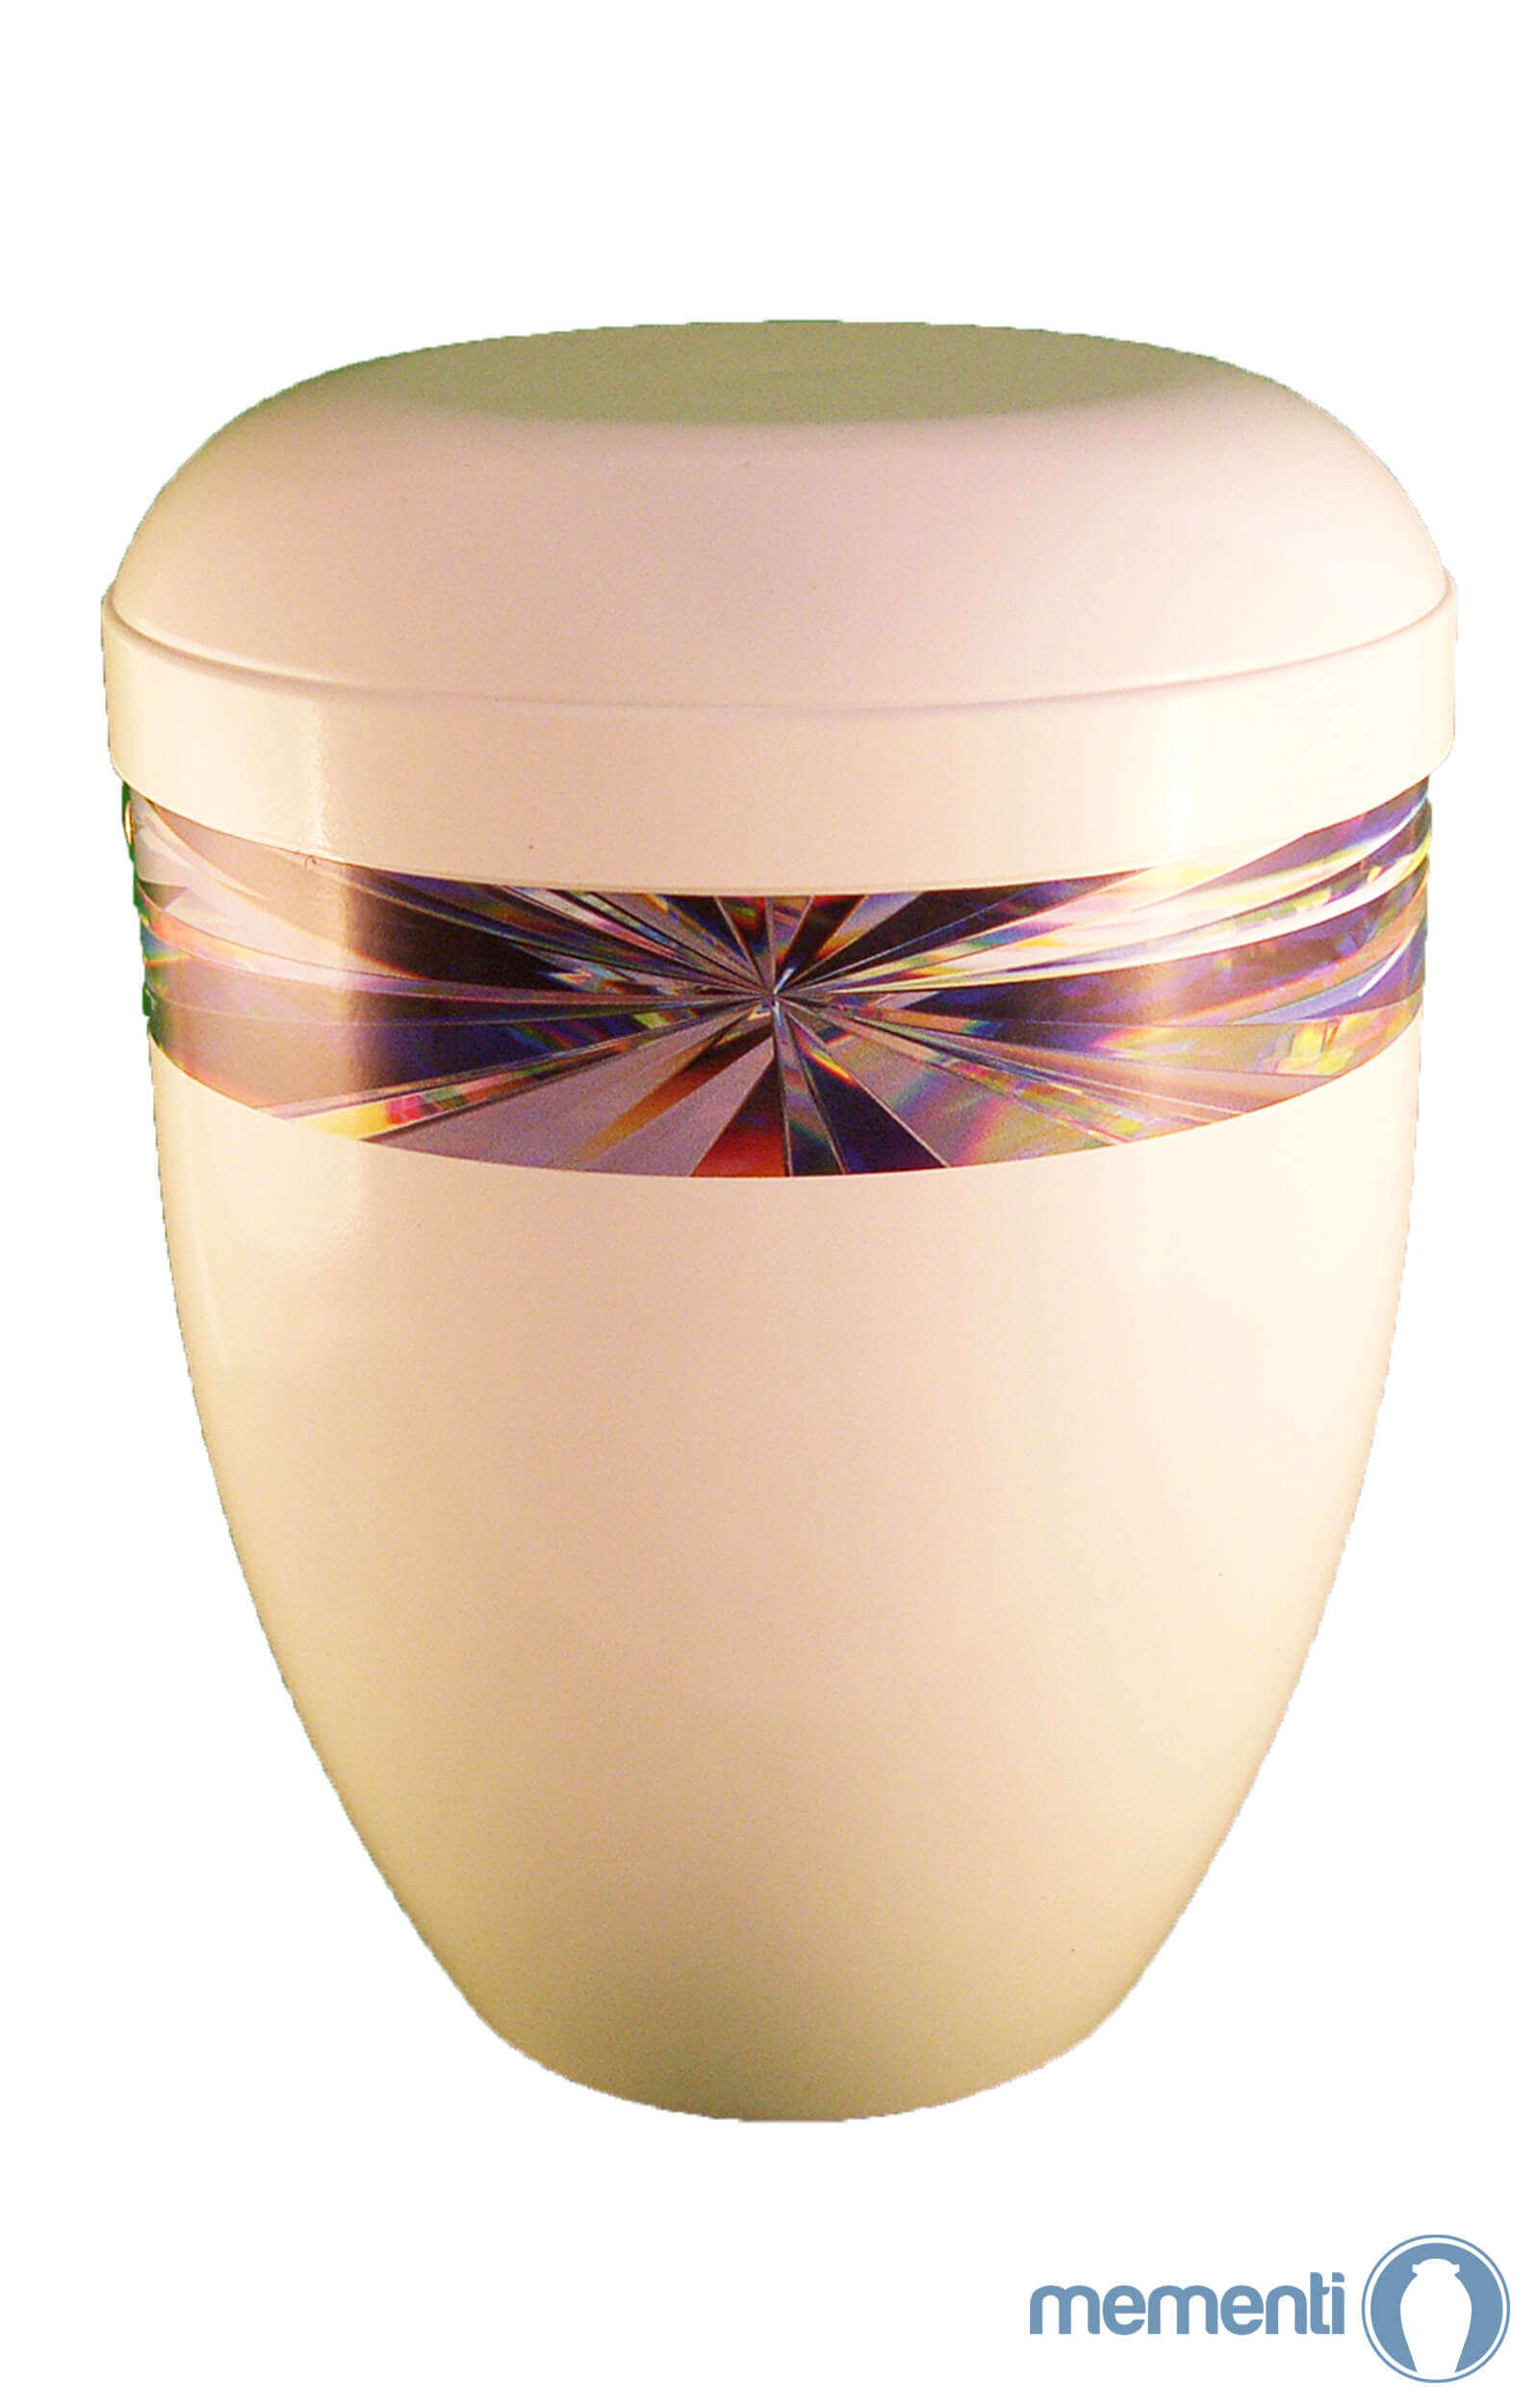 en BWG3711 bio urn white with diamond design